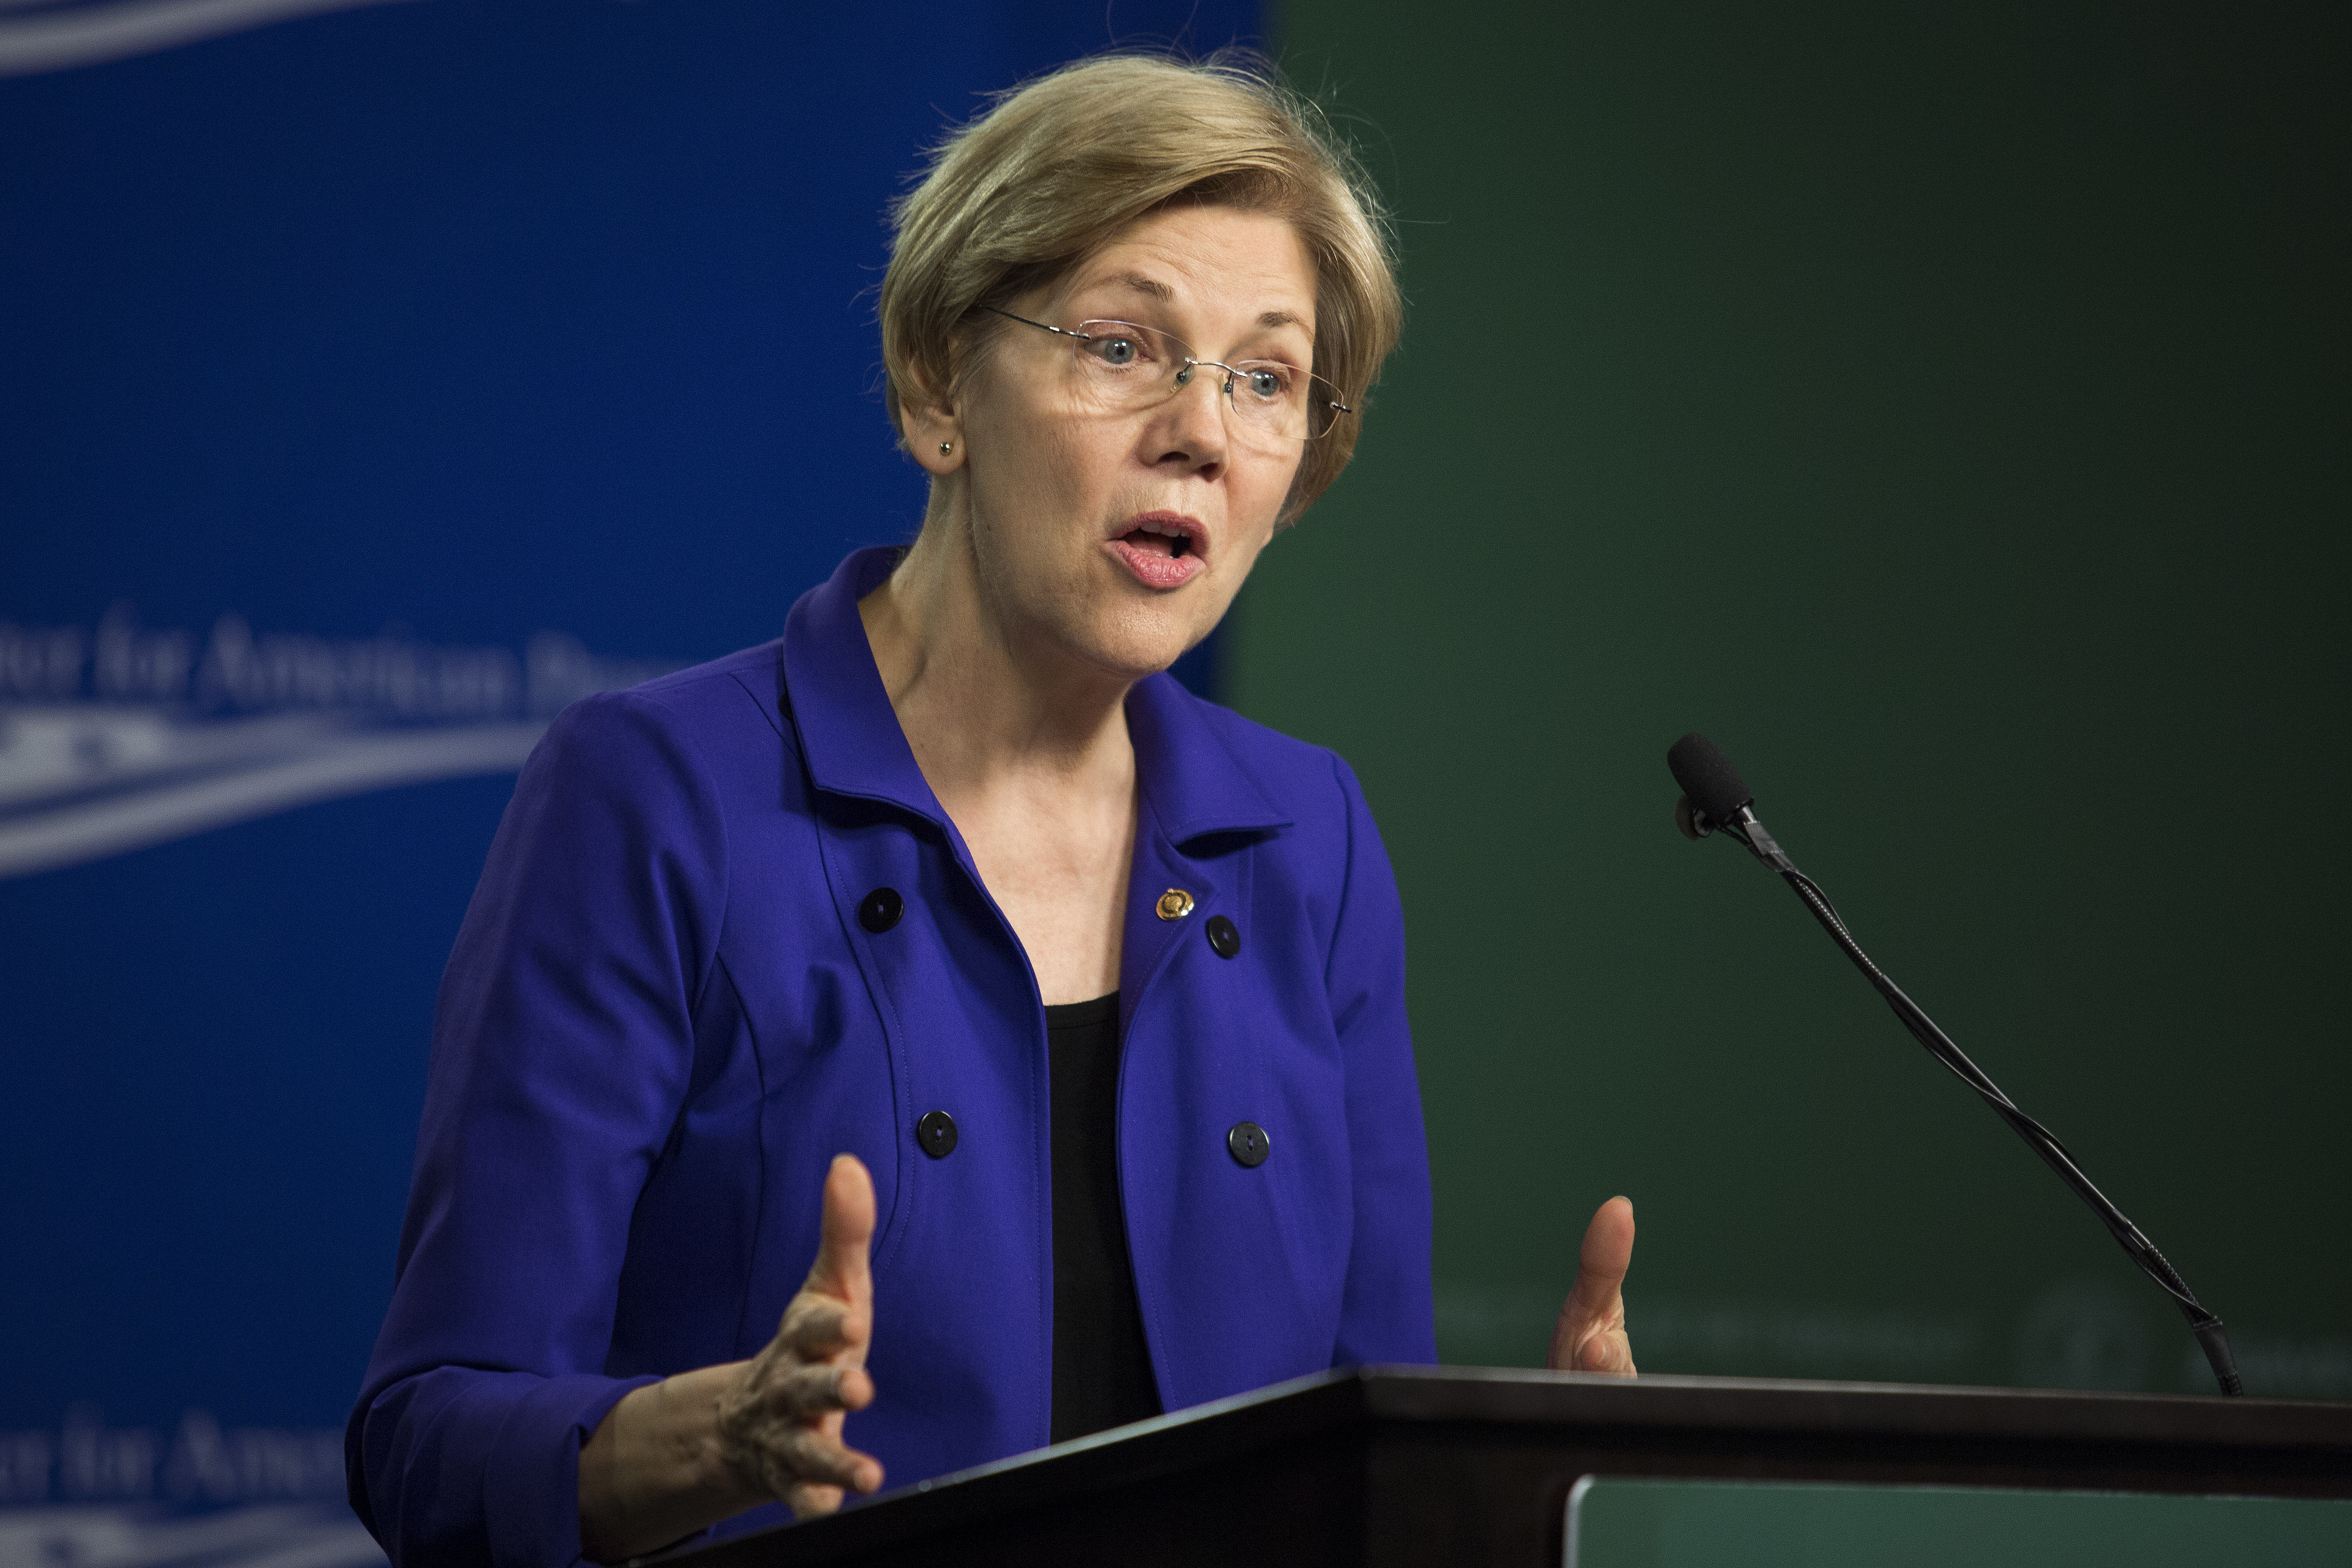 Senator Elizabeth Warren, a Democrat from Massachusetts, speaks during a U.S. Labor Department news conference at the Center for American Progress in Washington on April 6, 2016.